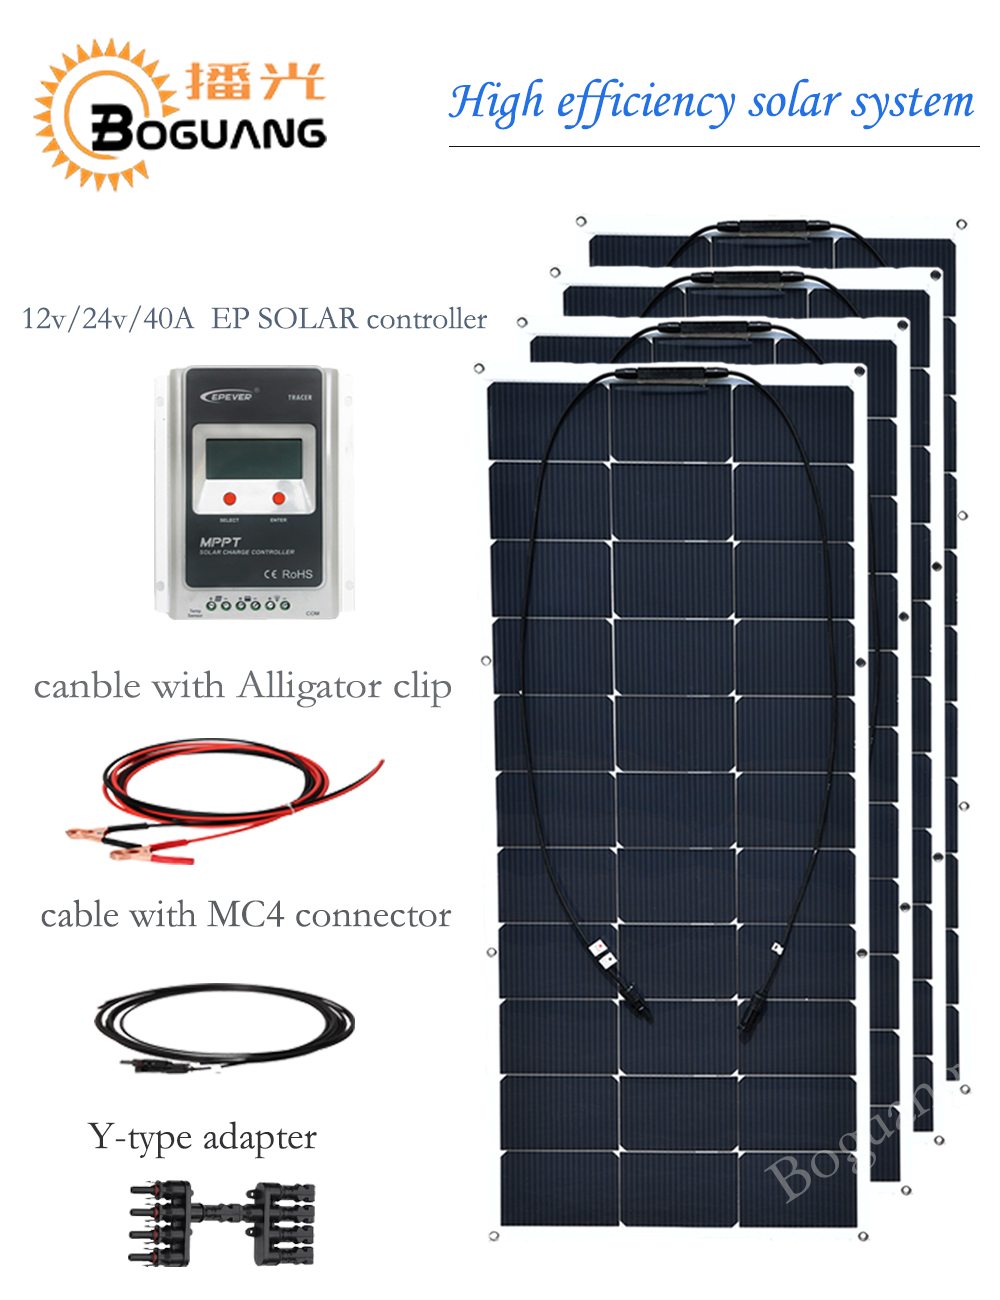 BOGUANG 40A EPSOLAR controller 100w flexible solar panel 400w solar system DIY kit module cell for RV car LED light 12v battery boguang 200w solar system 100w flexible solar panel high efficiency monocrystalline silicon cell module 20a controller cable